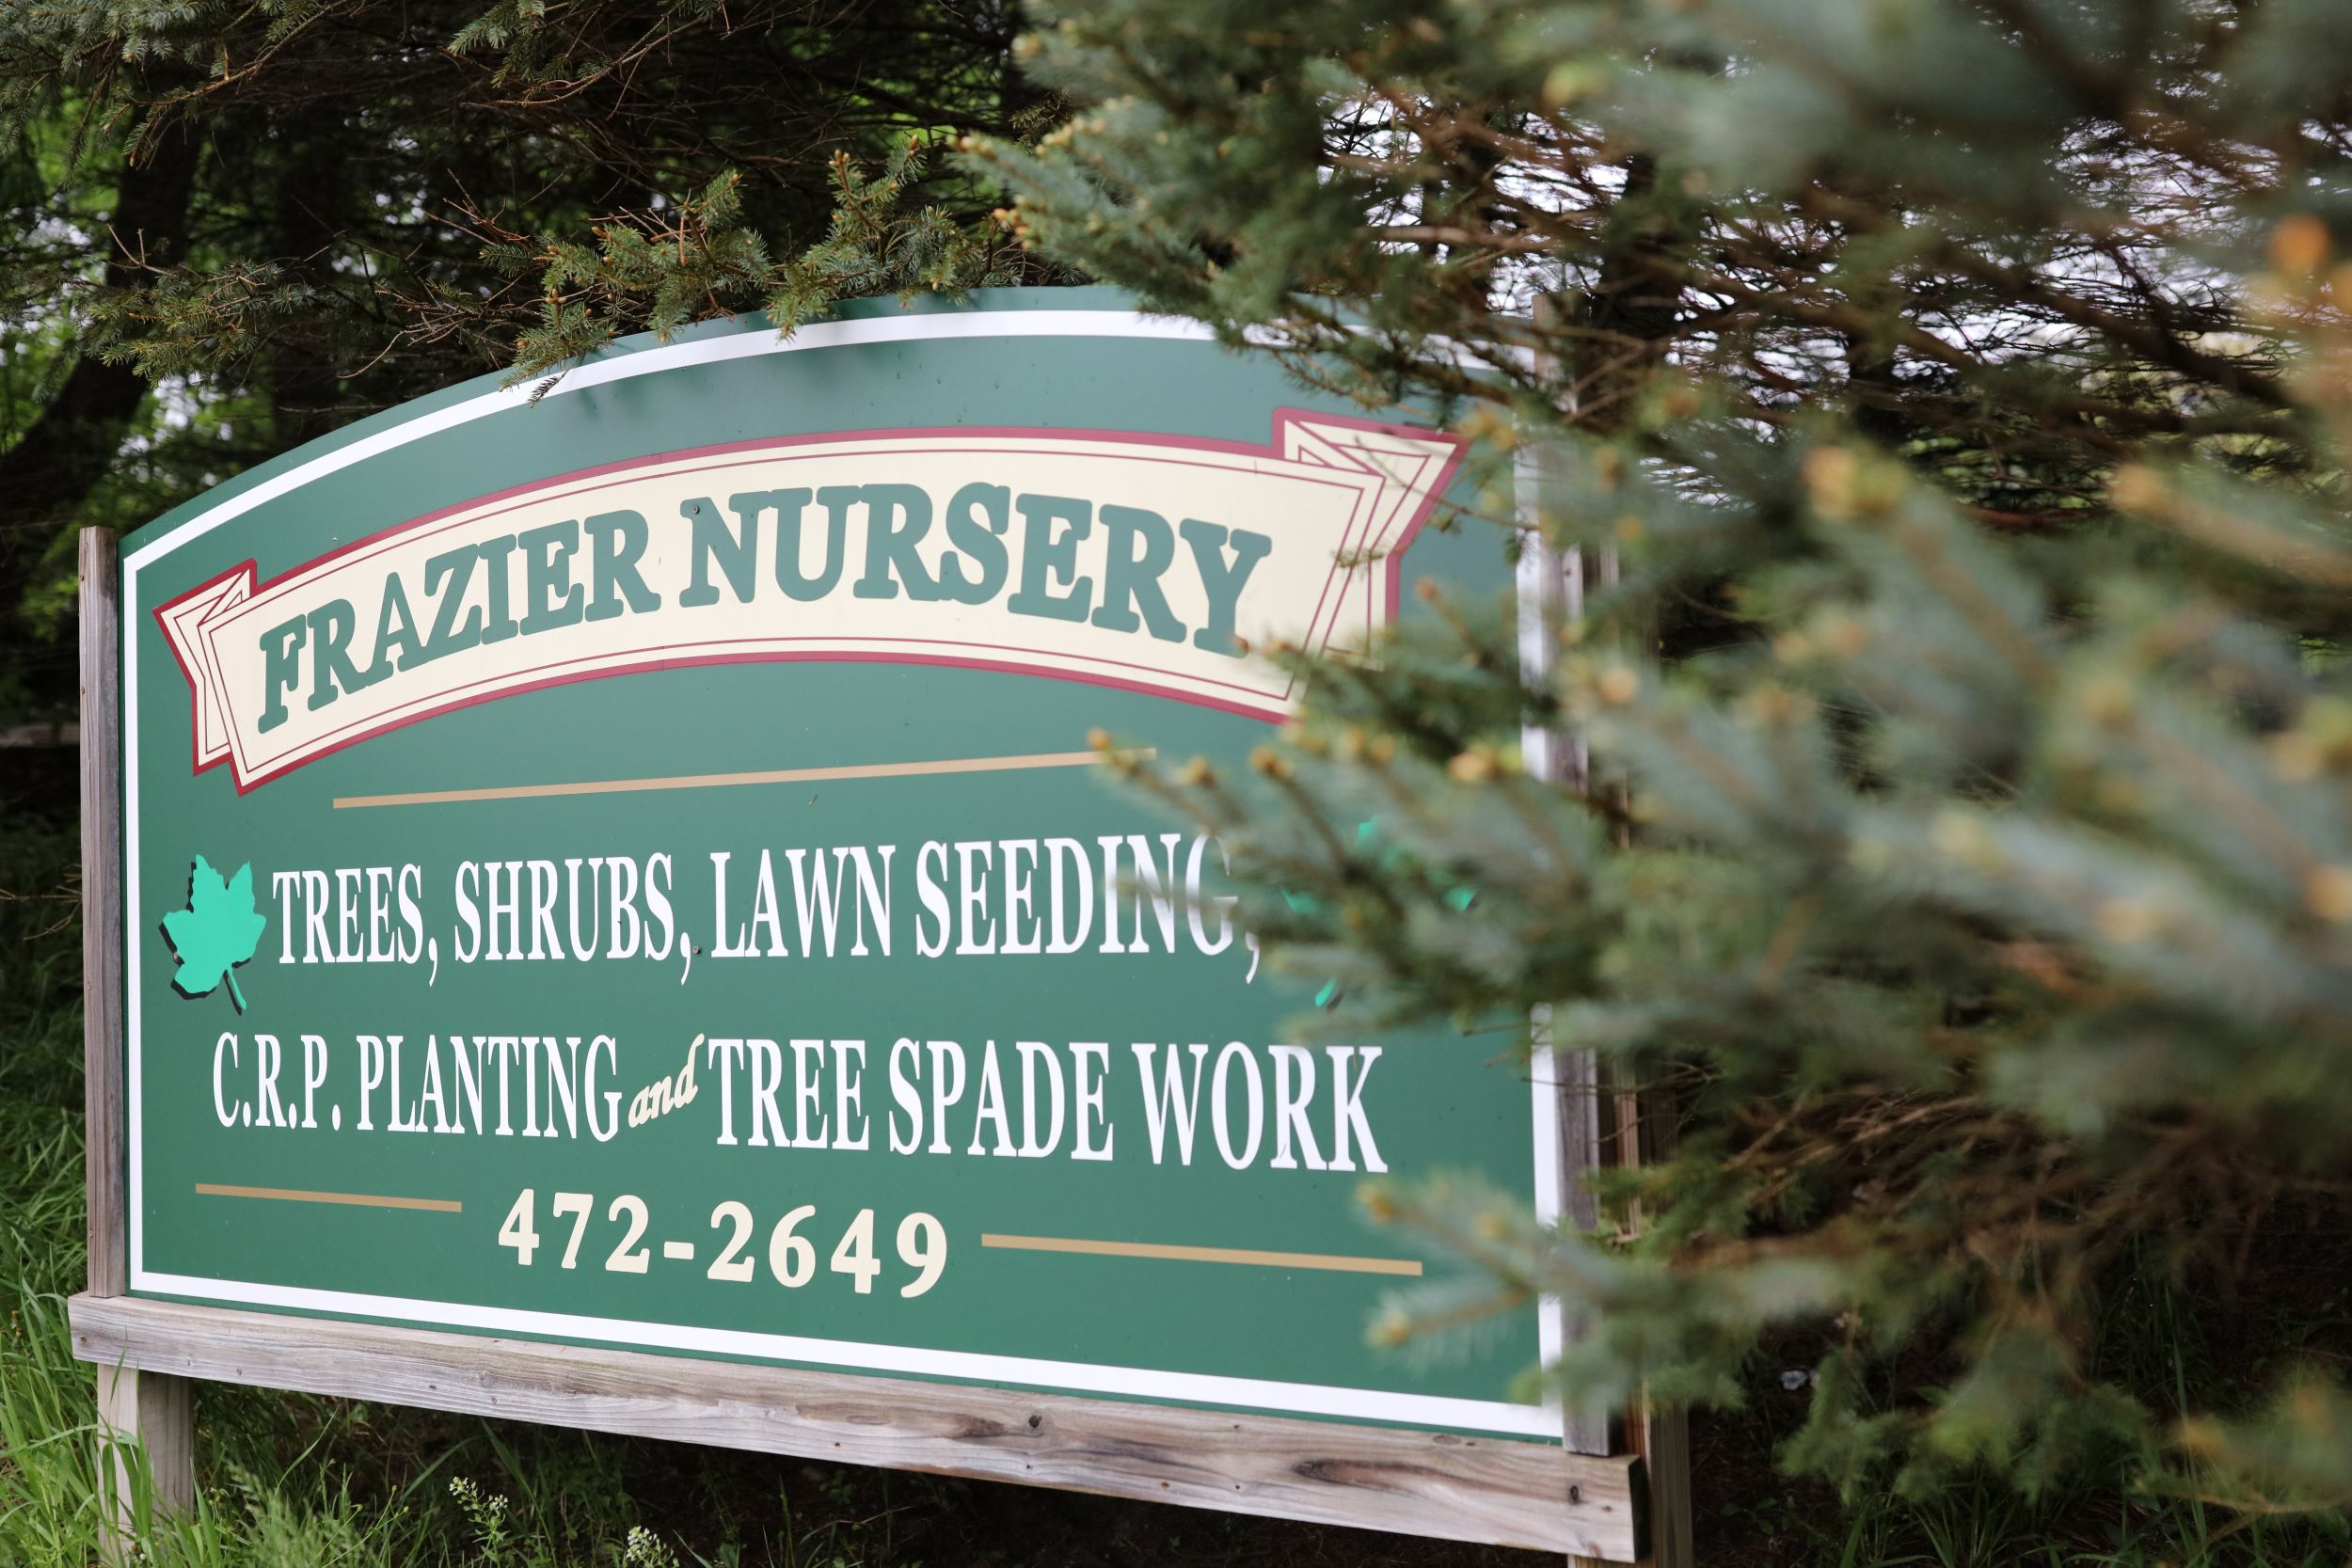 Frazier Nursery sign